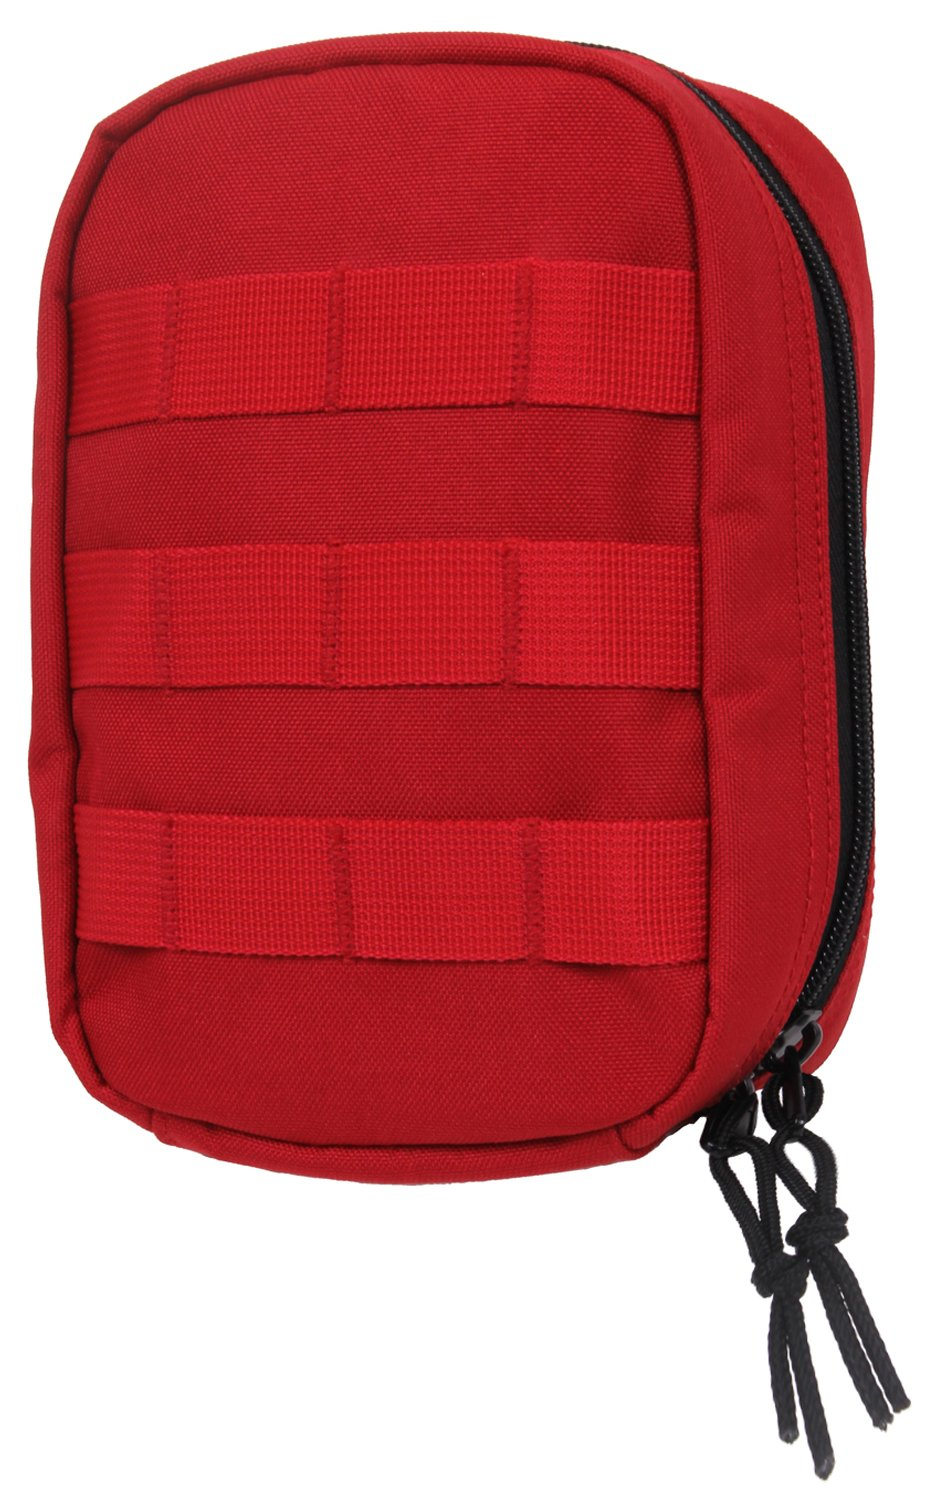 Rothco MOLLE Tactical Trauma Kit, Red